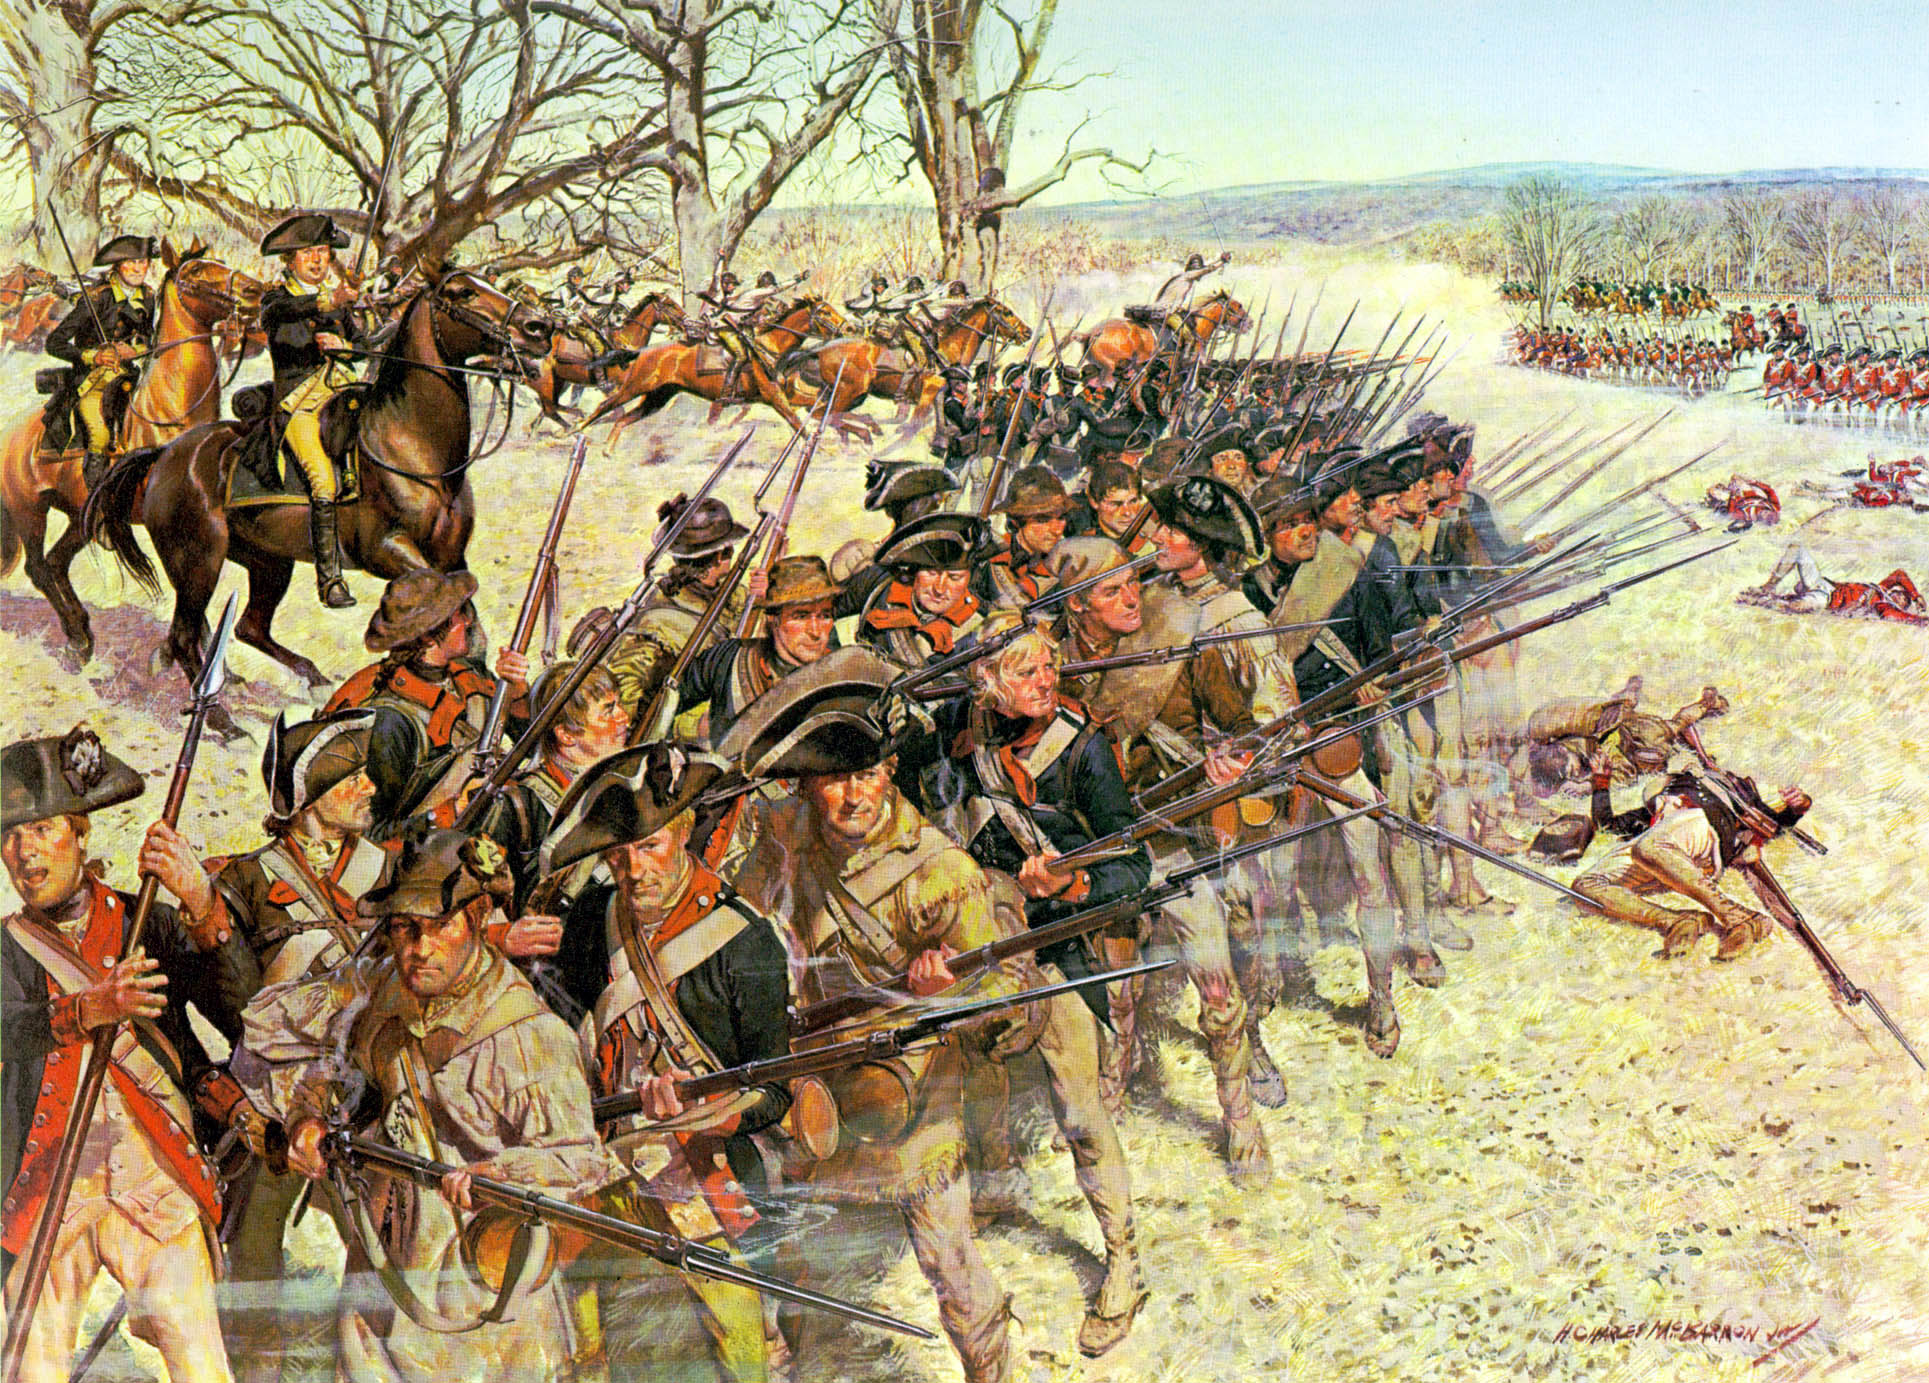 the united states and british war the american revolution The goals and ideals of the american revolution are clearly expressed in the declaration of independence for many years, we were satisfied with our relationship with great britain however, that began to change after the french and indian war the colonists believed that the role of the british.